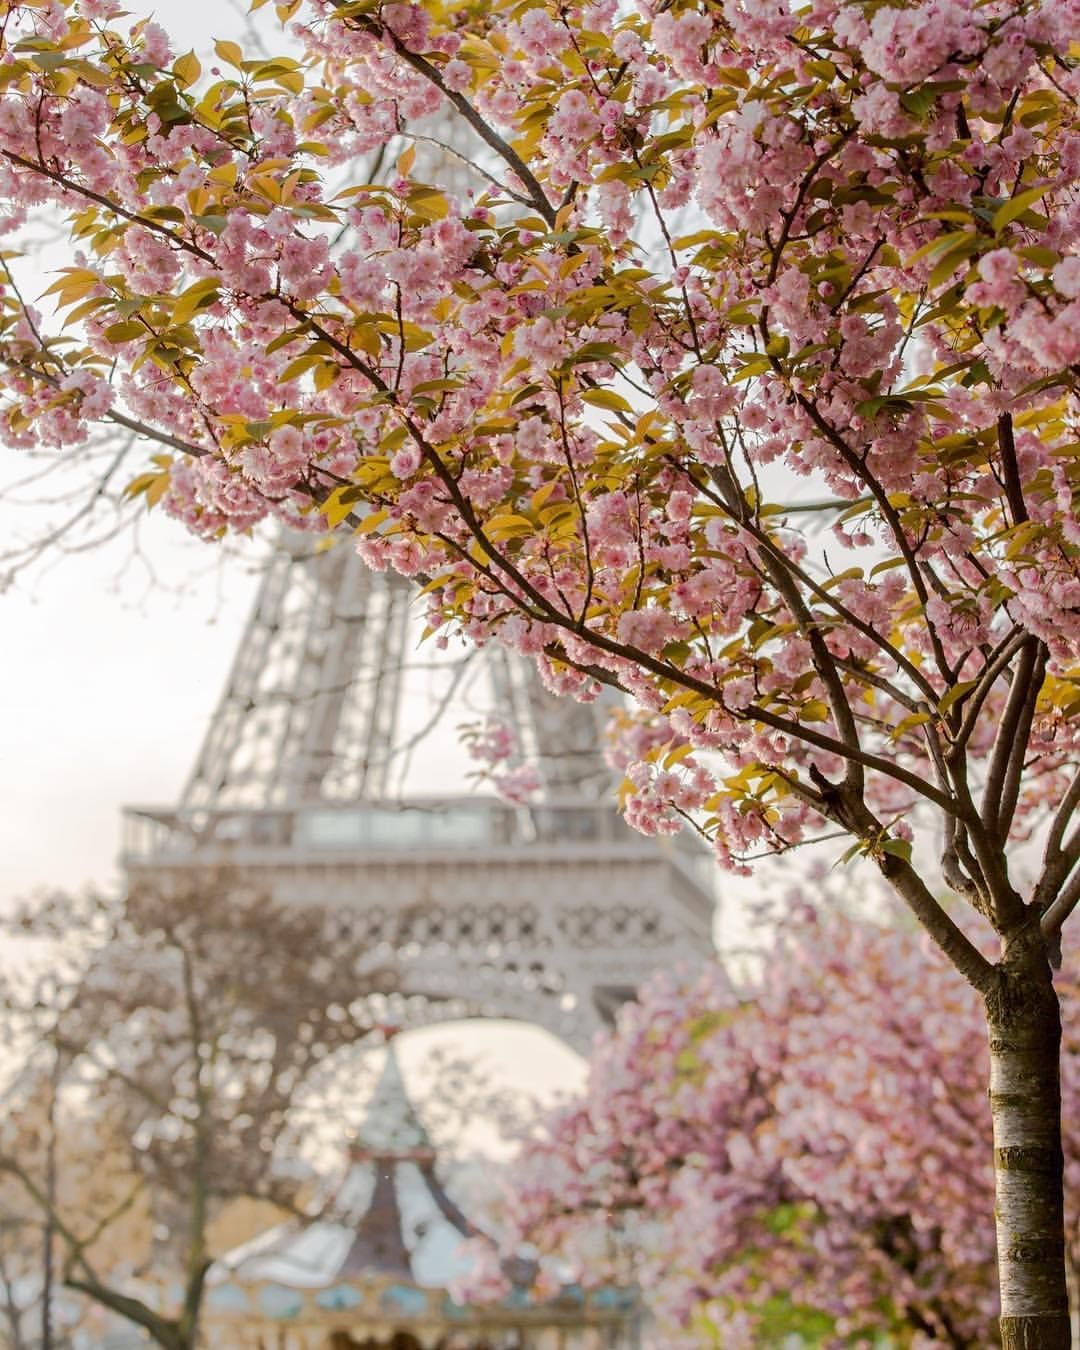 The Cherry Blossoms Will Be Gone Very Soon They Last To Short But Give So Much Feelings Lovespring Cherrybl Paris Photography Beautiful Paris Paris Images